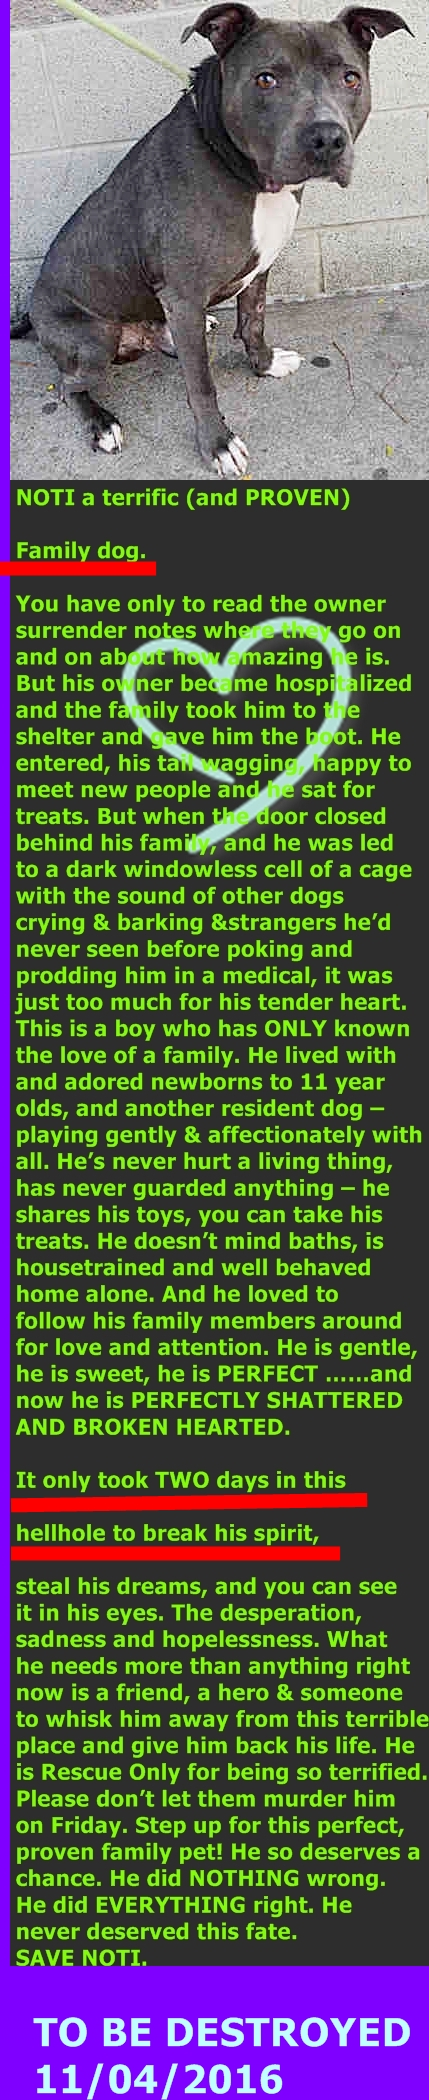 SOOO WRONG MURDERED 11-4-2016 --- Manhattan Center  My name is NOTI. My Animal ID # is A1095459. I am a male gray and white am pit bull ter. The shelter thinks I am about 7 YEARS old.  I came in the shelter as a OWNER SUR on 11/01/2016 from OUT OF NYC, owner surrender reason stated was OWNER HOSP. http://nycdogs.urgentpodr.org/noti-a1095459/